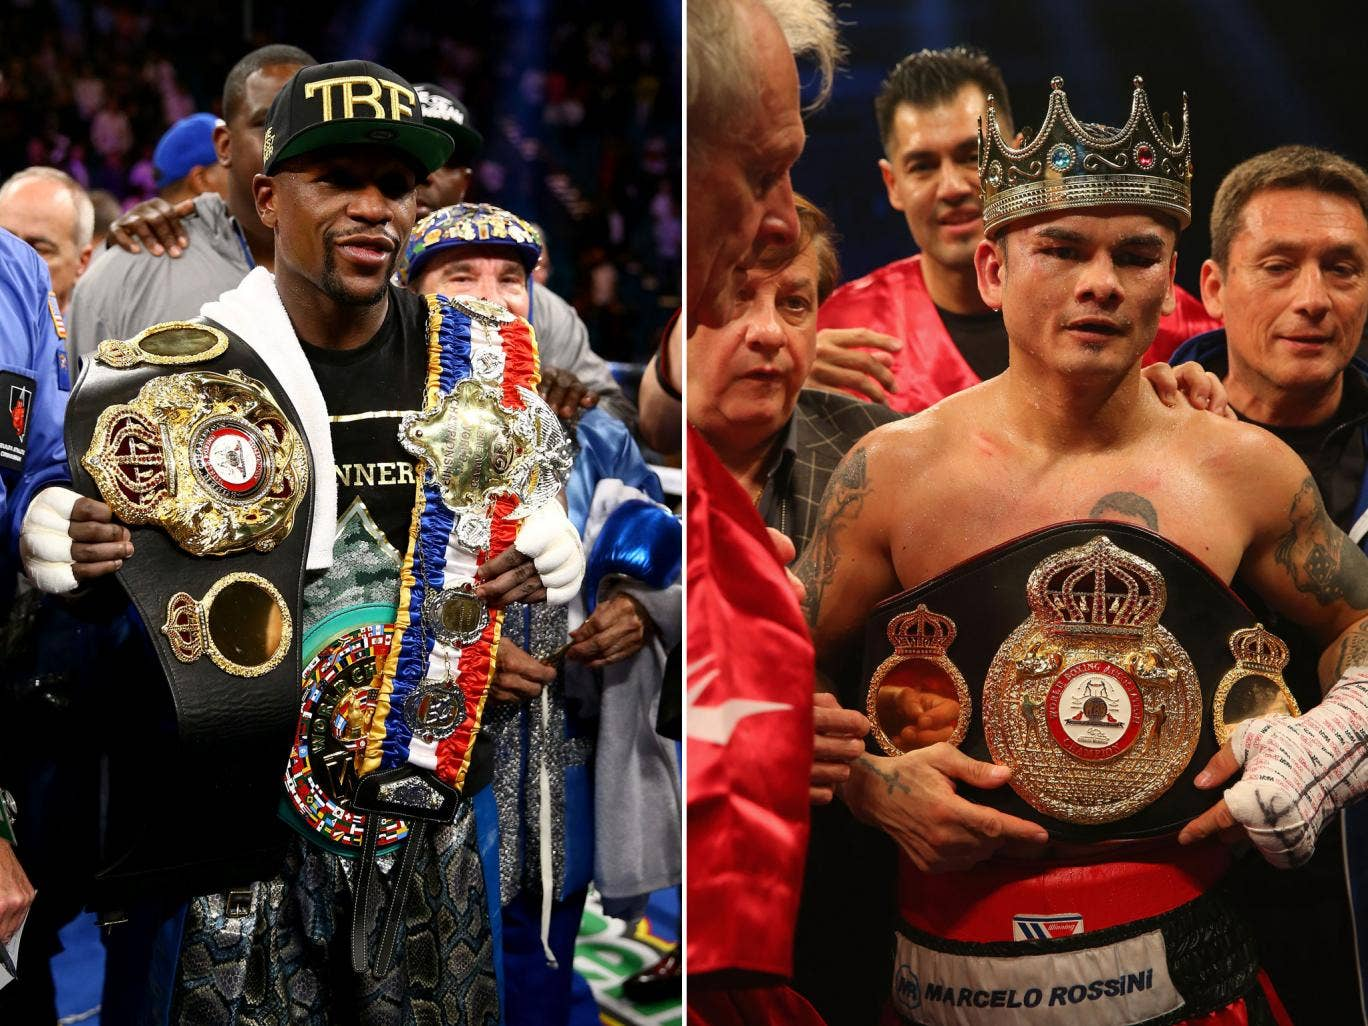 Floyd Mayweather and Marcos Maidana will face off in a welterweight unification bout, scuppering the chance of Amir Khan facing the pound-for-pound king